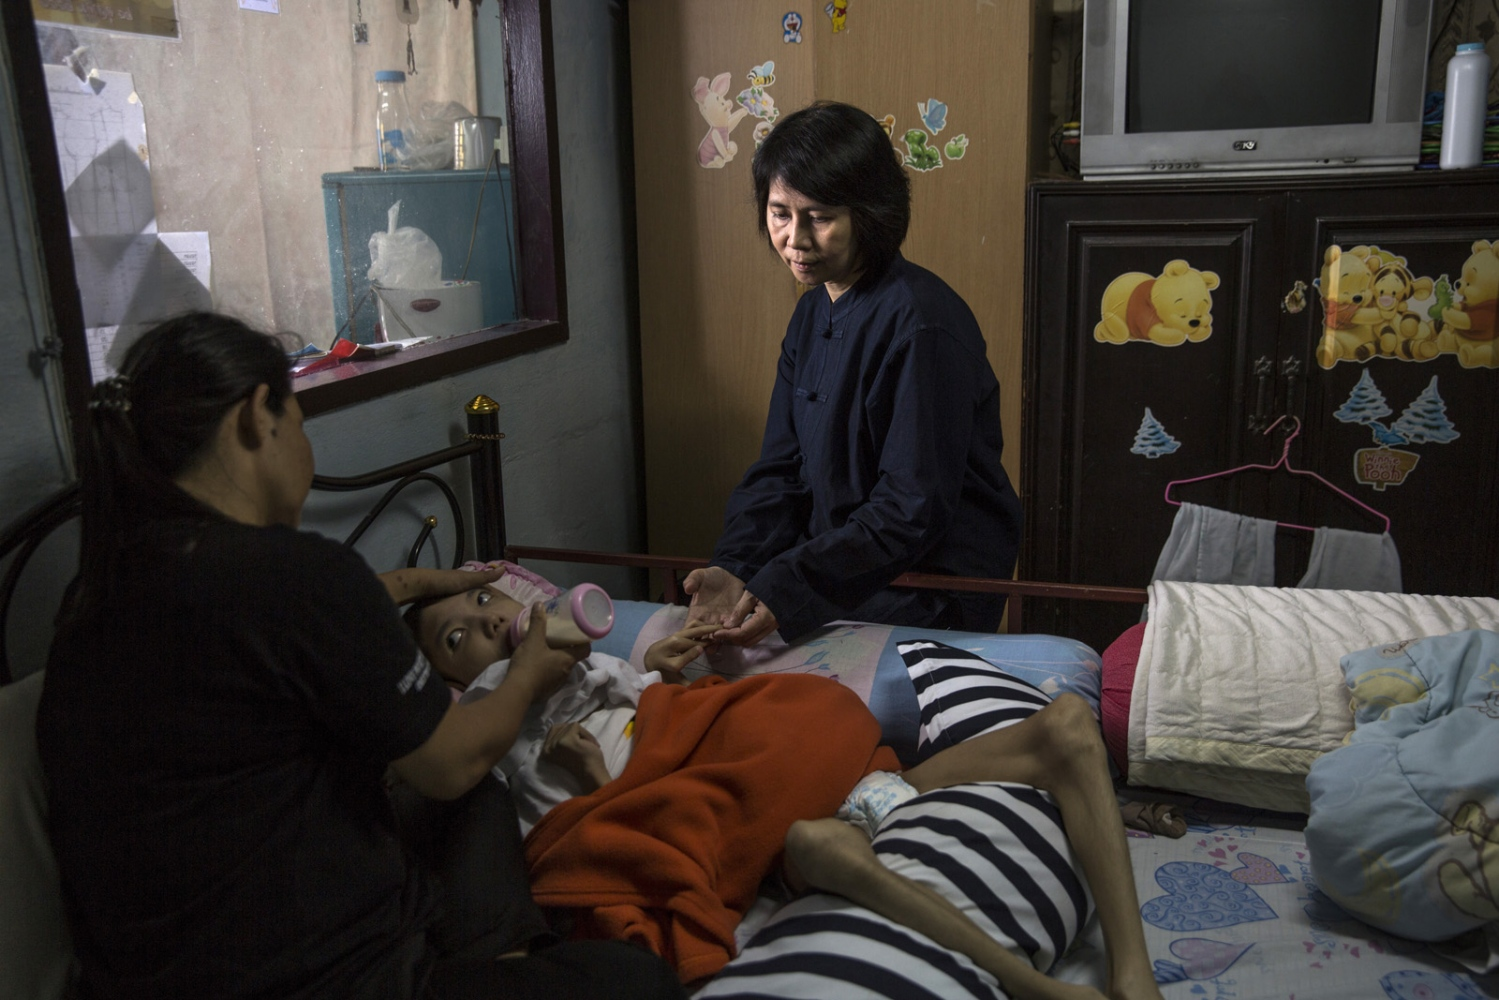 Preeyanan Lorsermvattana sits in the bedroom of a mother and son whom she assisted in receiving compensation after a hospital doctor injected the pregnant mother with a drug that led to the child being born severely mentally and physically disabled. Now 9 years old she continues to help the family. After she suffered personally during the birth of her son which left him having to have a prosthetic hip and received no compensation she made it her mission to help others. Bangkok, Thailand